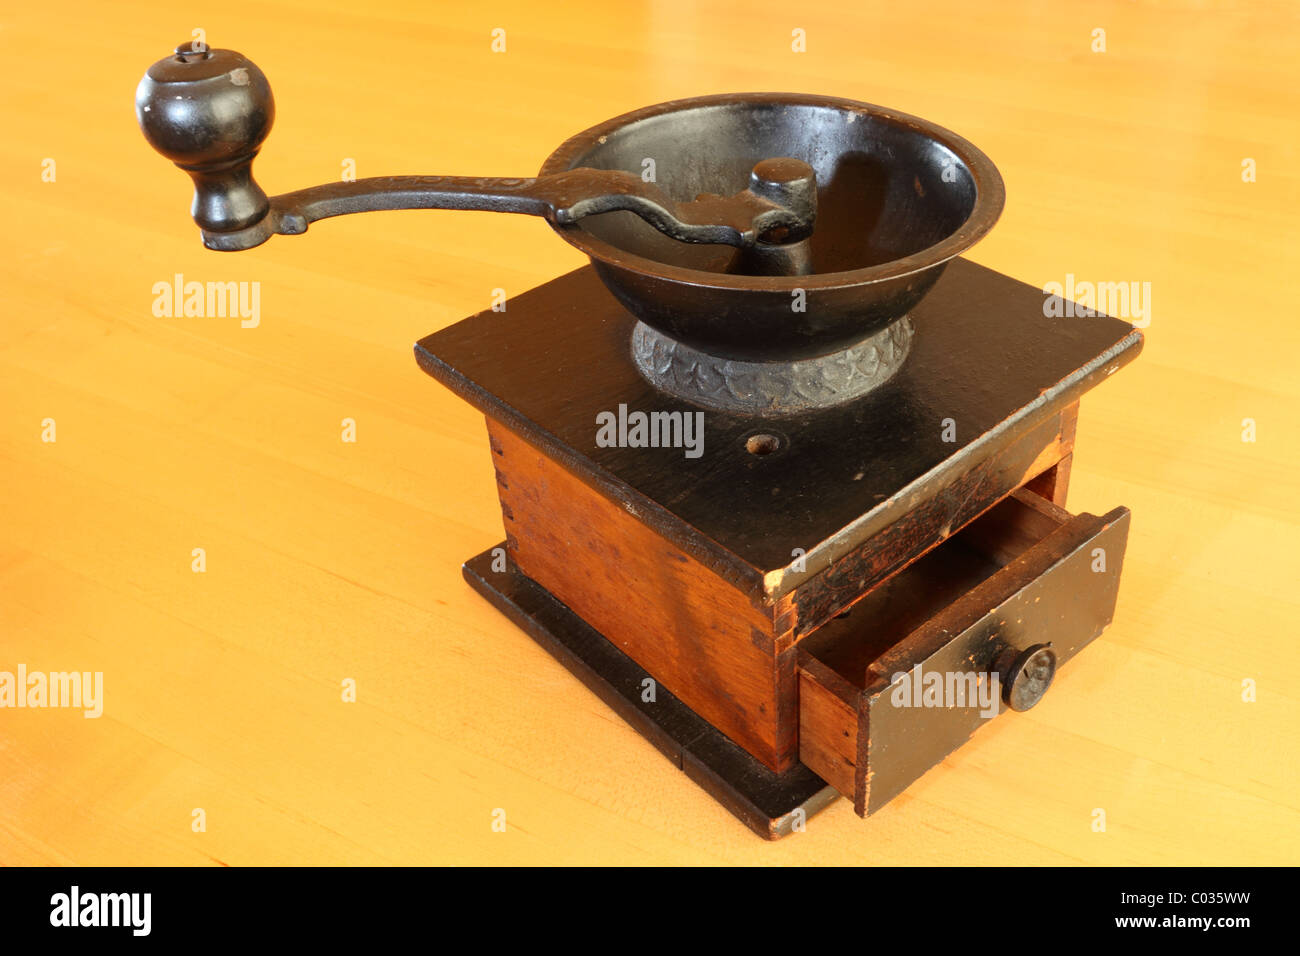 Still-life of an antique hand cranked tabletop coffee grinder. - Stock Image